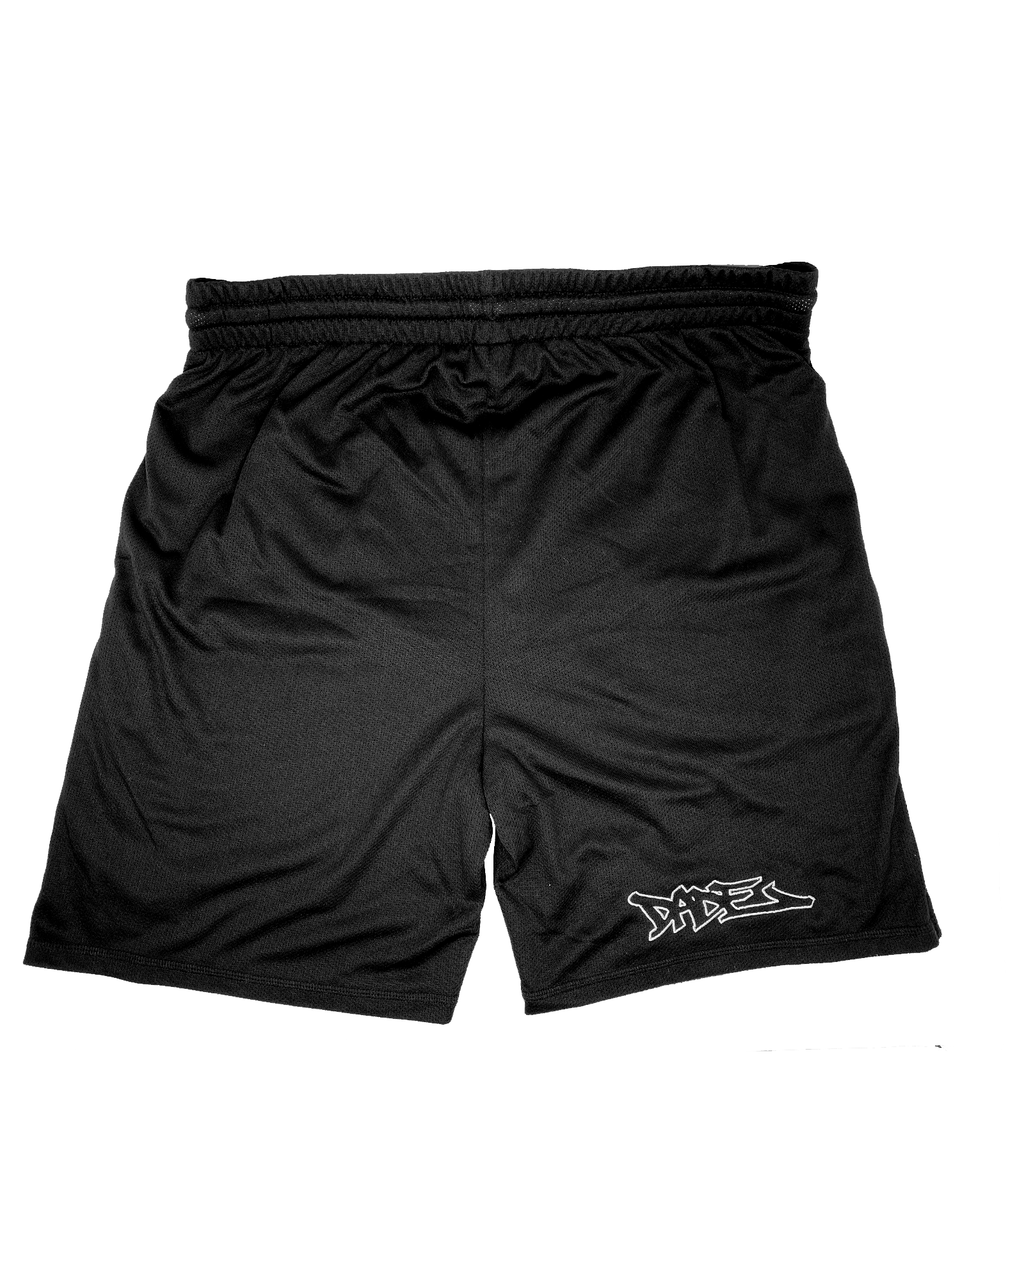 DADE World Wide Court Shorts